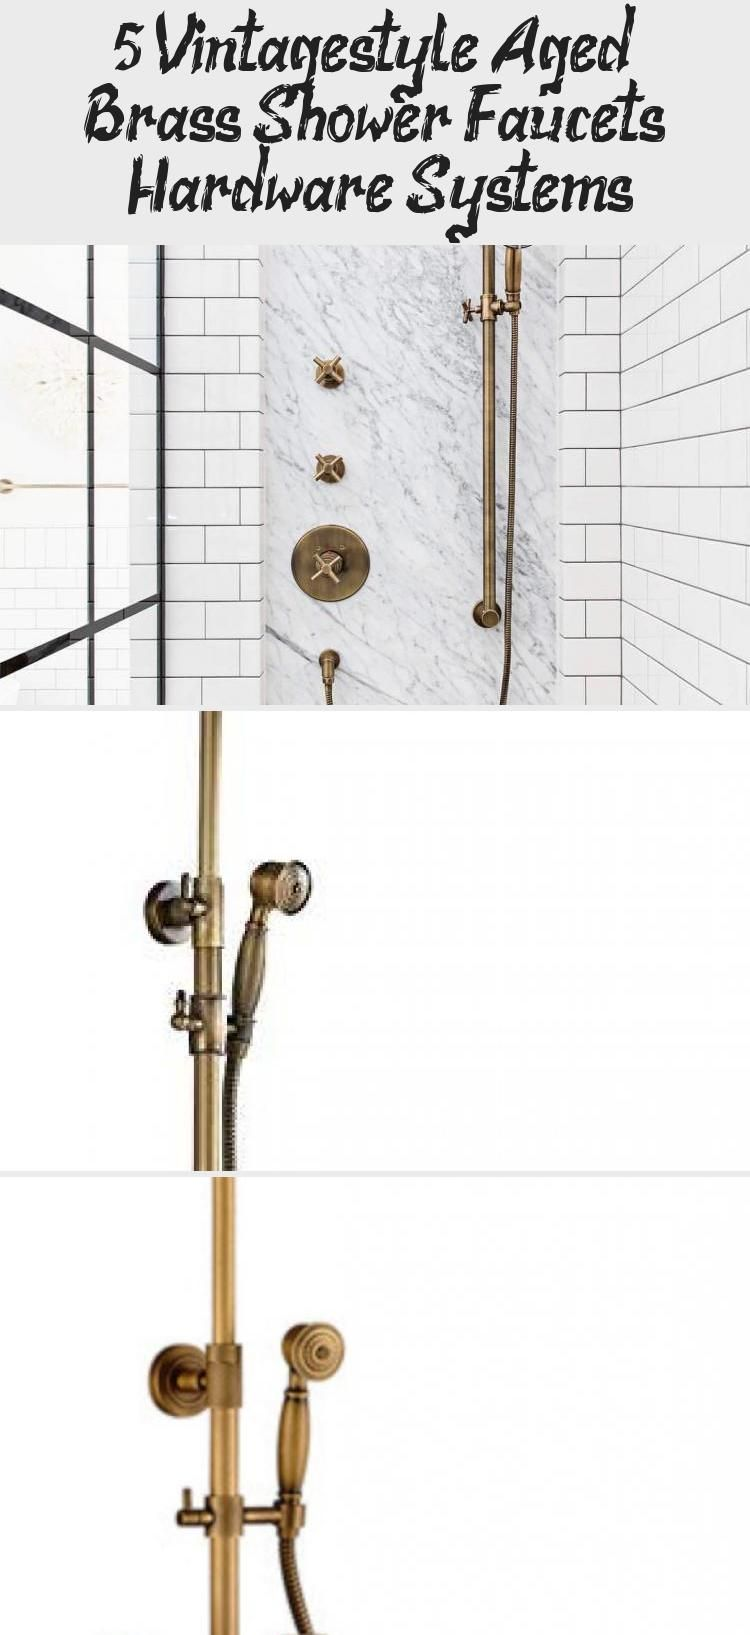 Photo of 5 Vintage-style Aged Brass Shower Faucets & Hardware Systems – Galafashion, Street Style, Outfits ideas